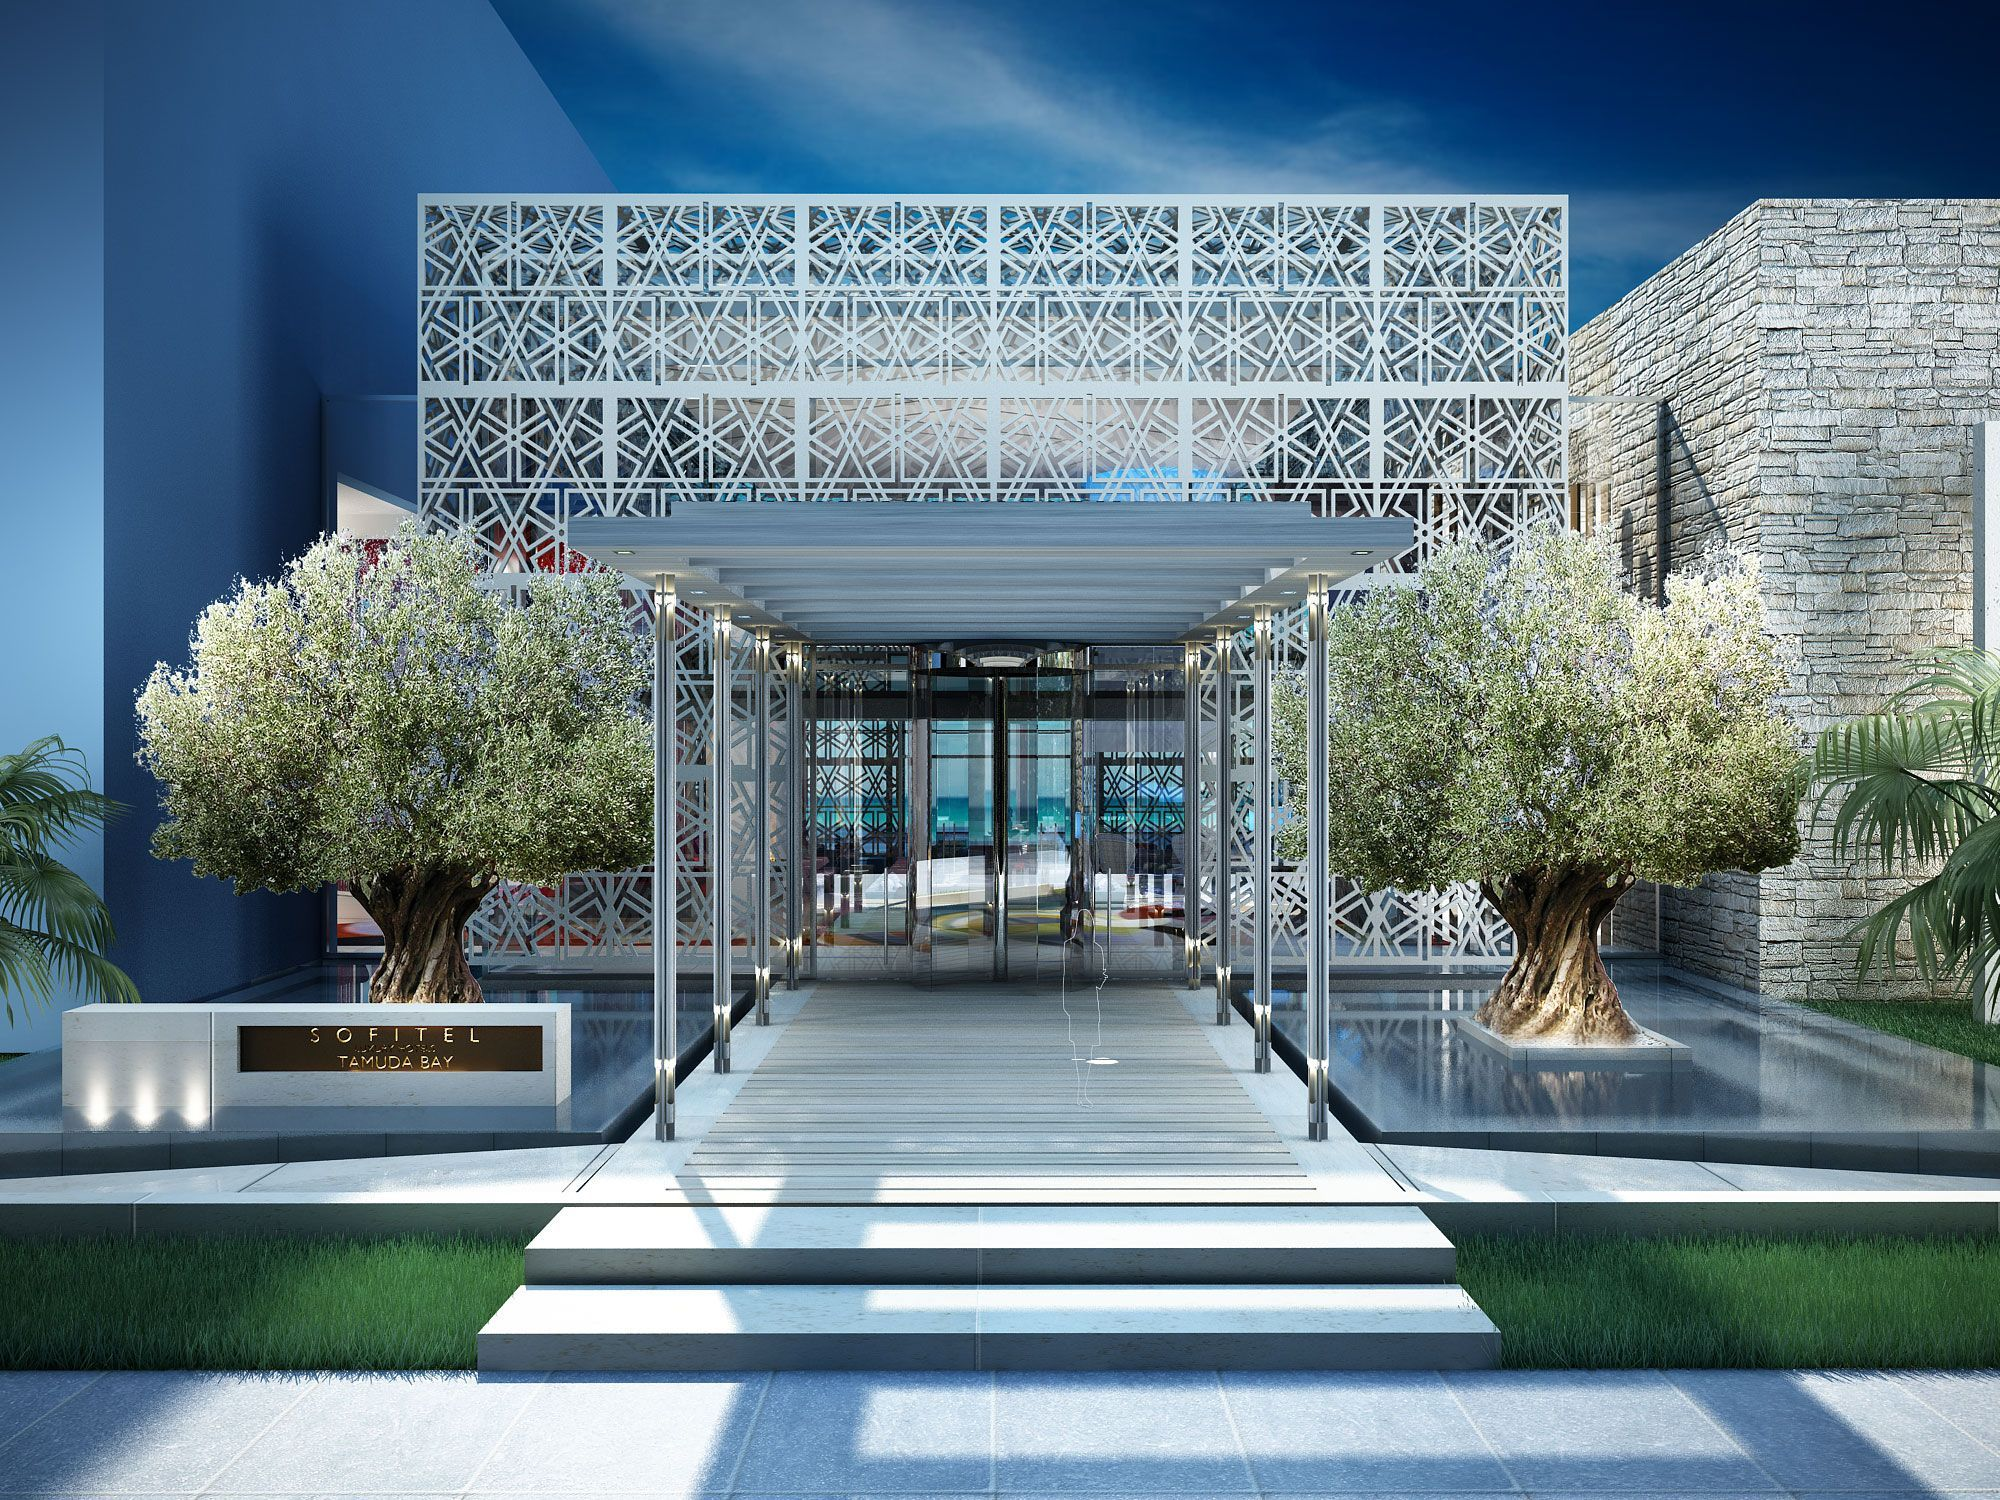 Modern architecture hotel entrance design africa sofitel for Hotel entrance decor